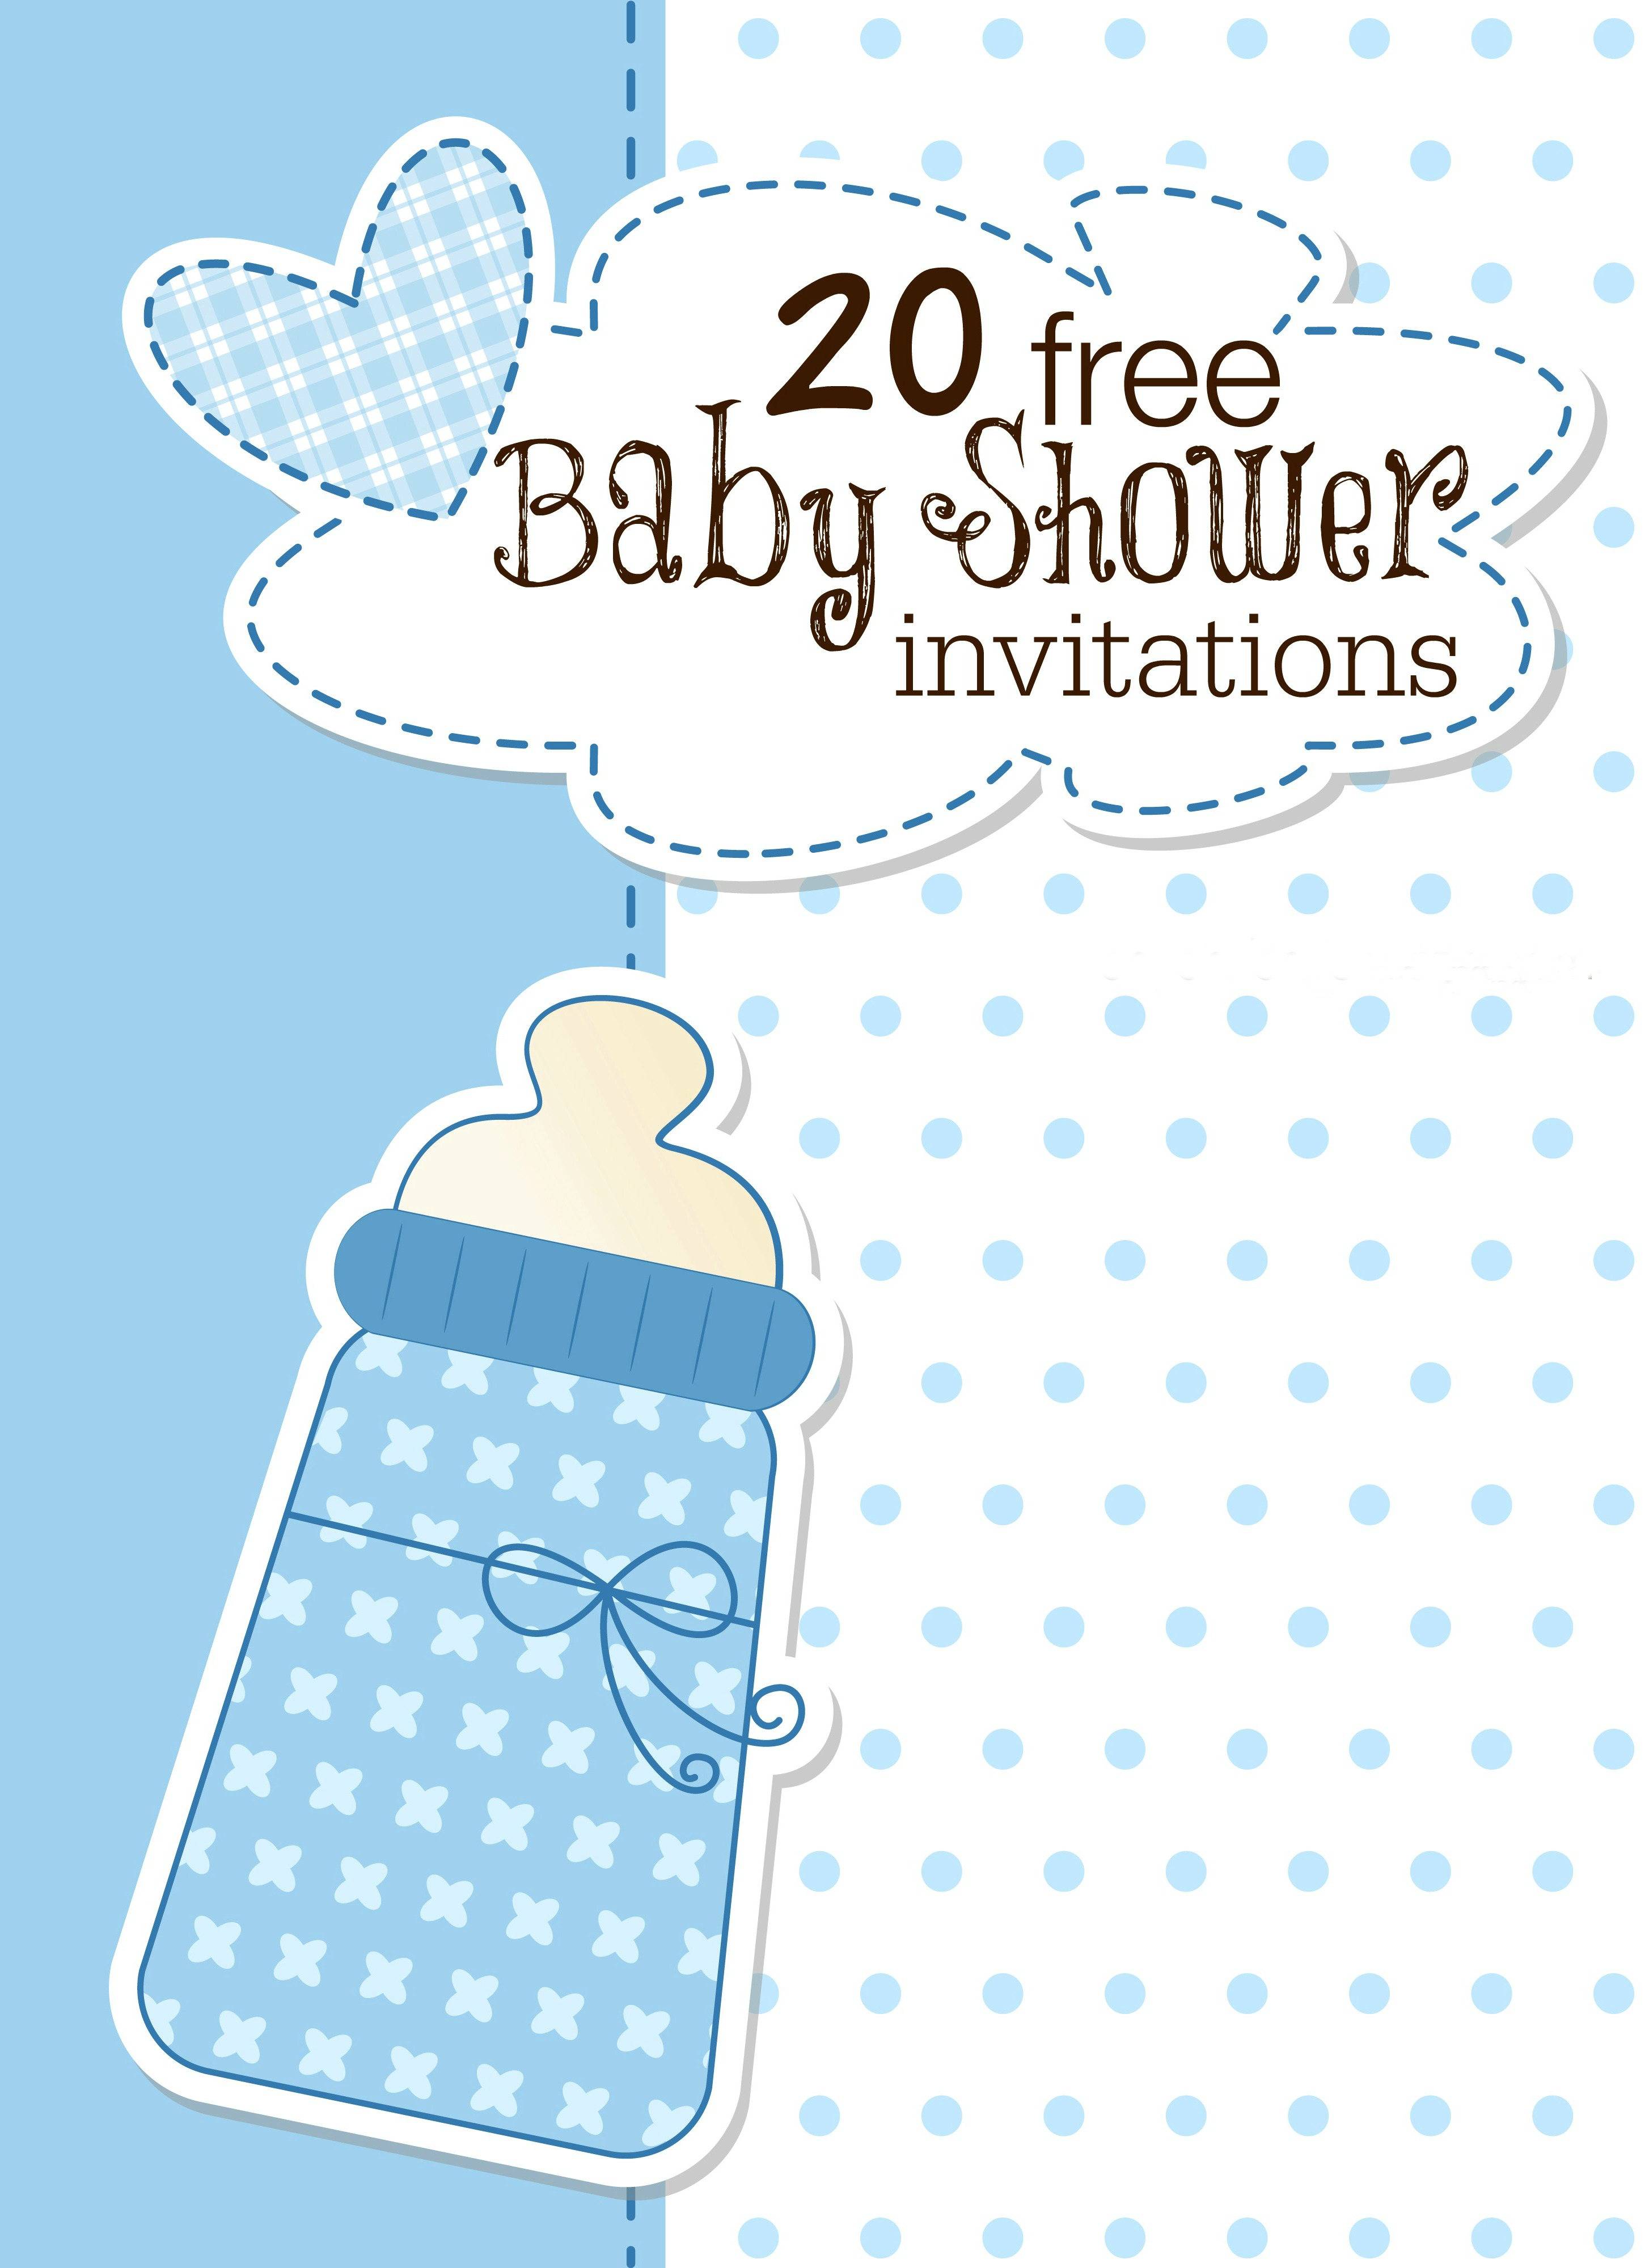 Baby Shower Invitations For Boys Design The Best For The Special CrystalandComp.com